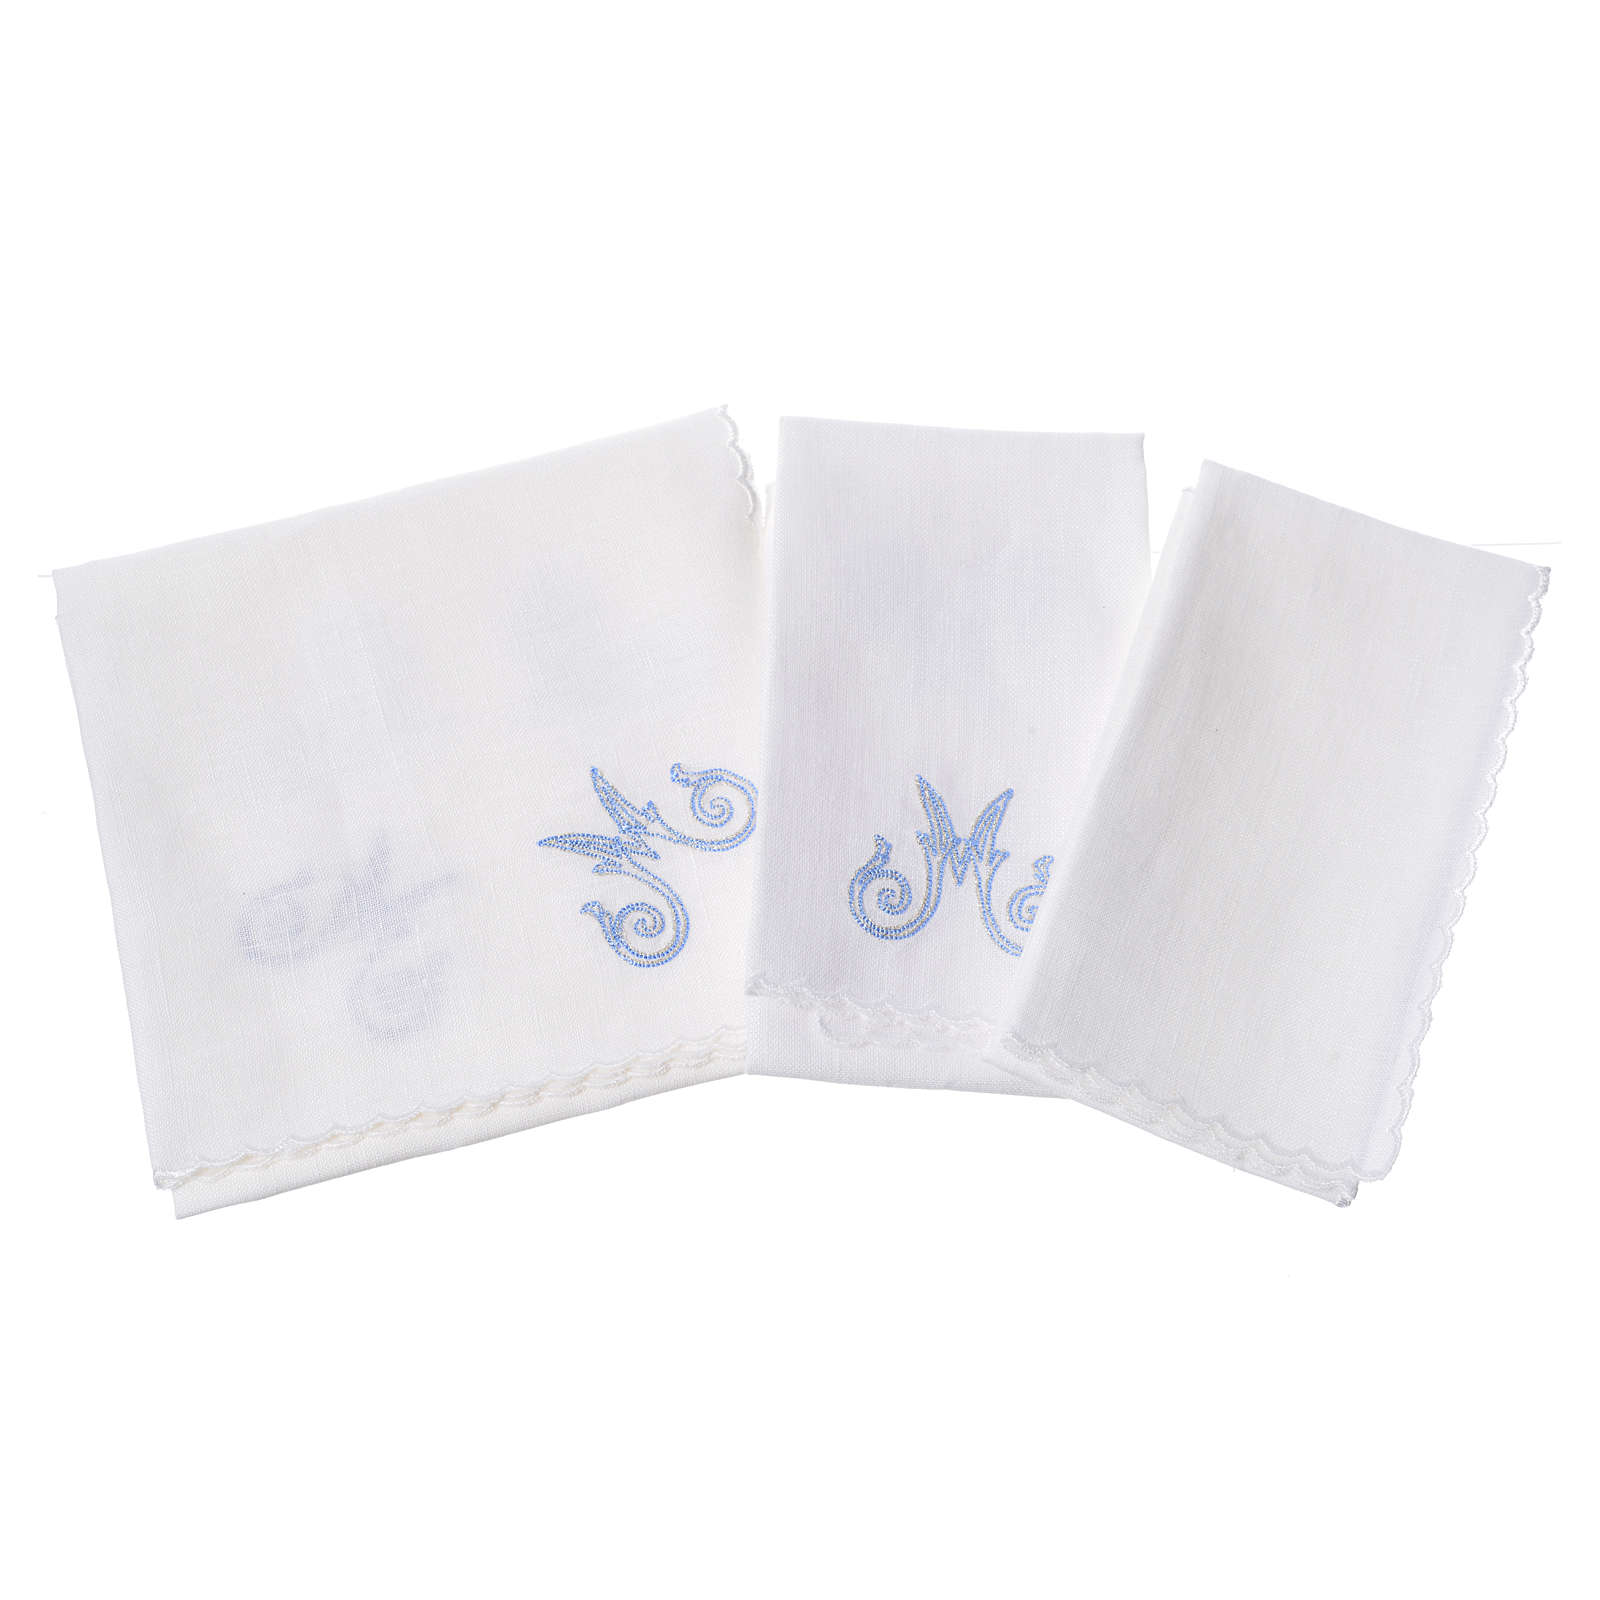 Altar cloth set, with Marian symbol and decorations 4